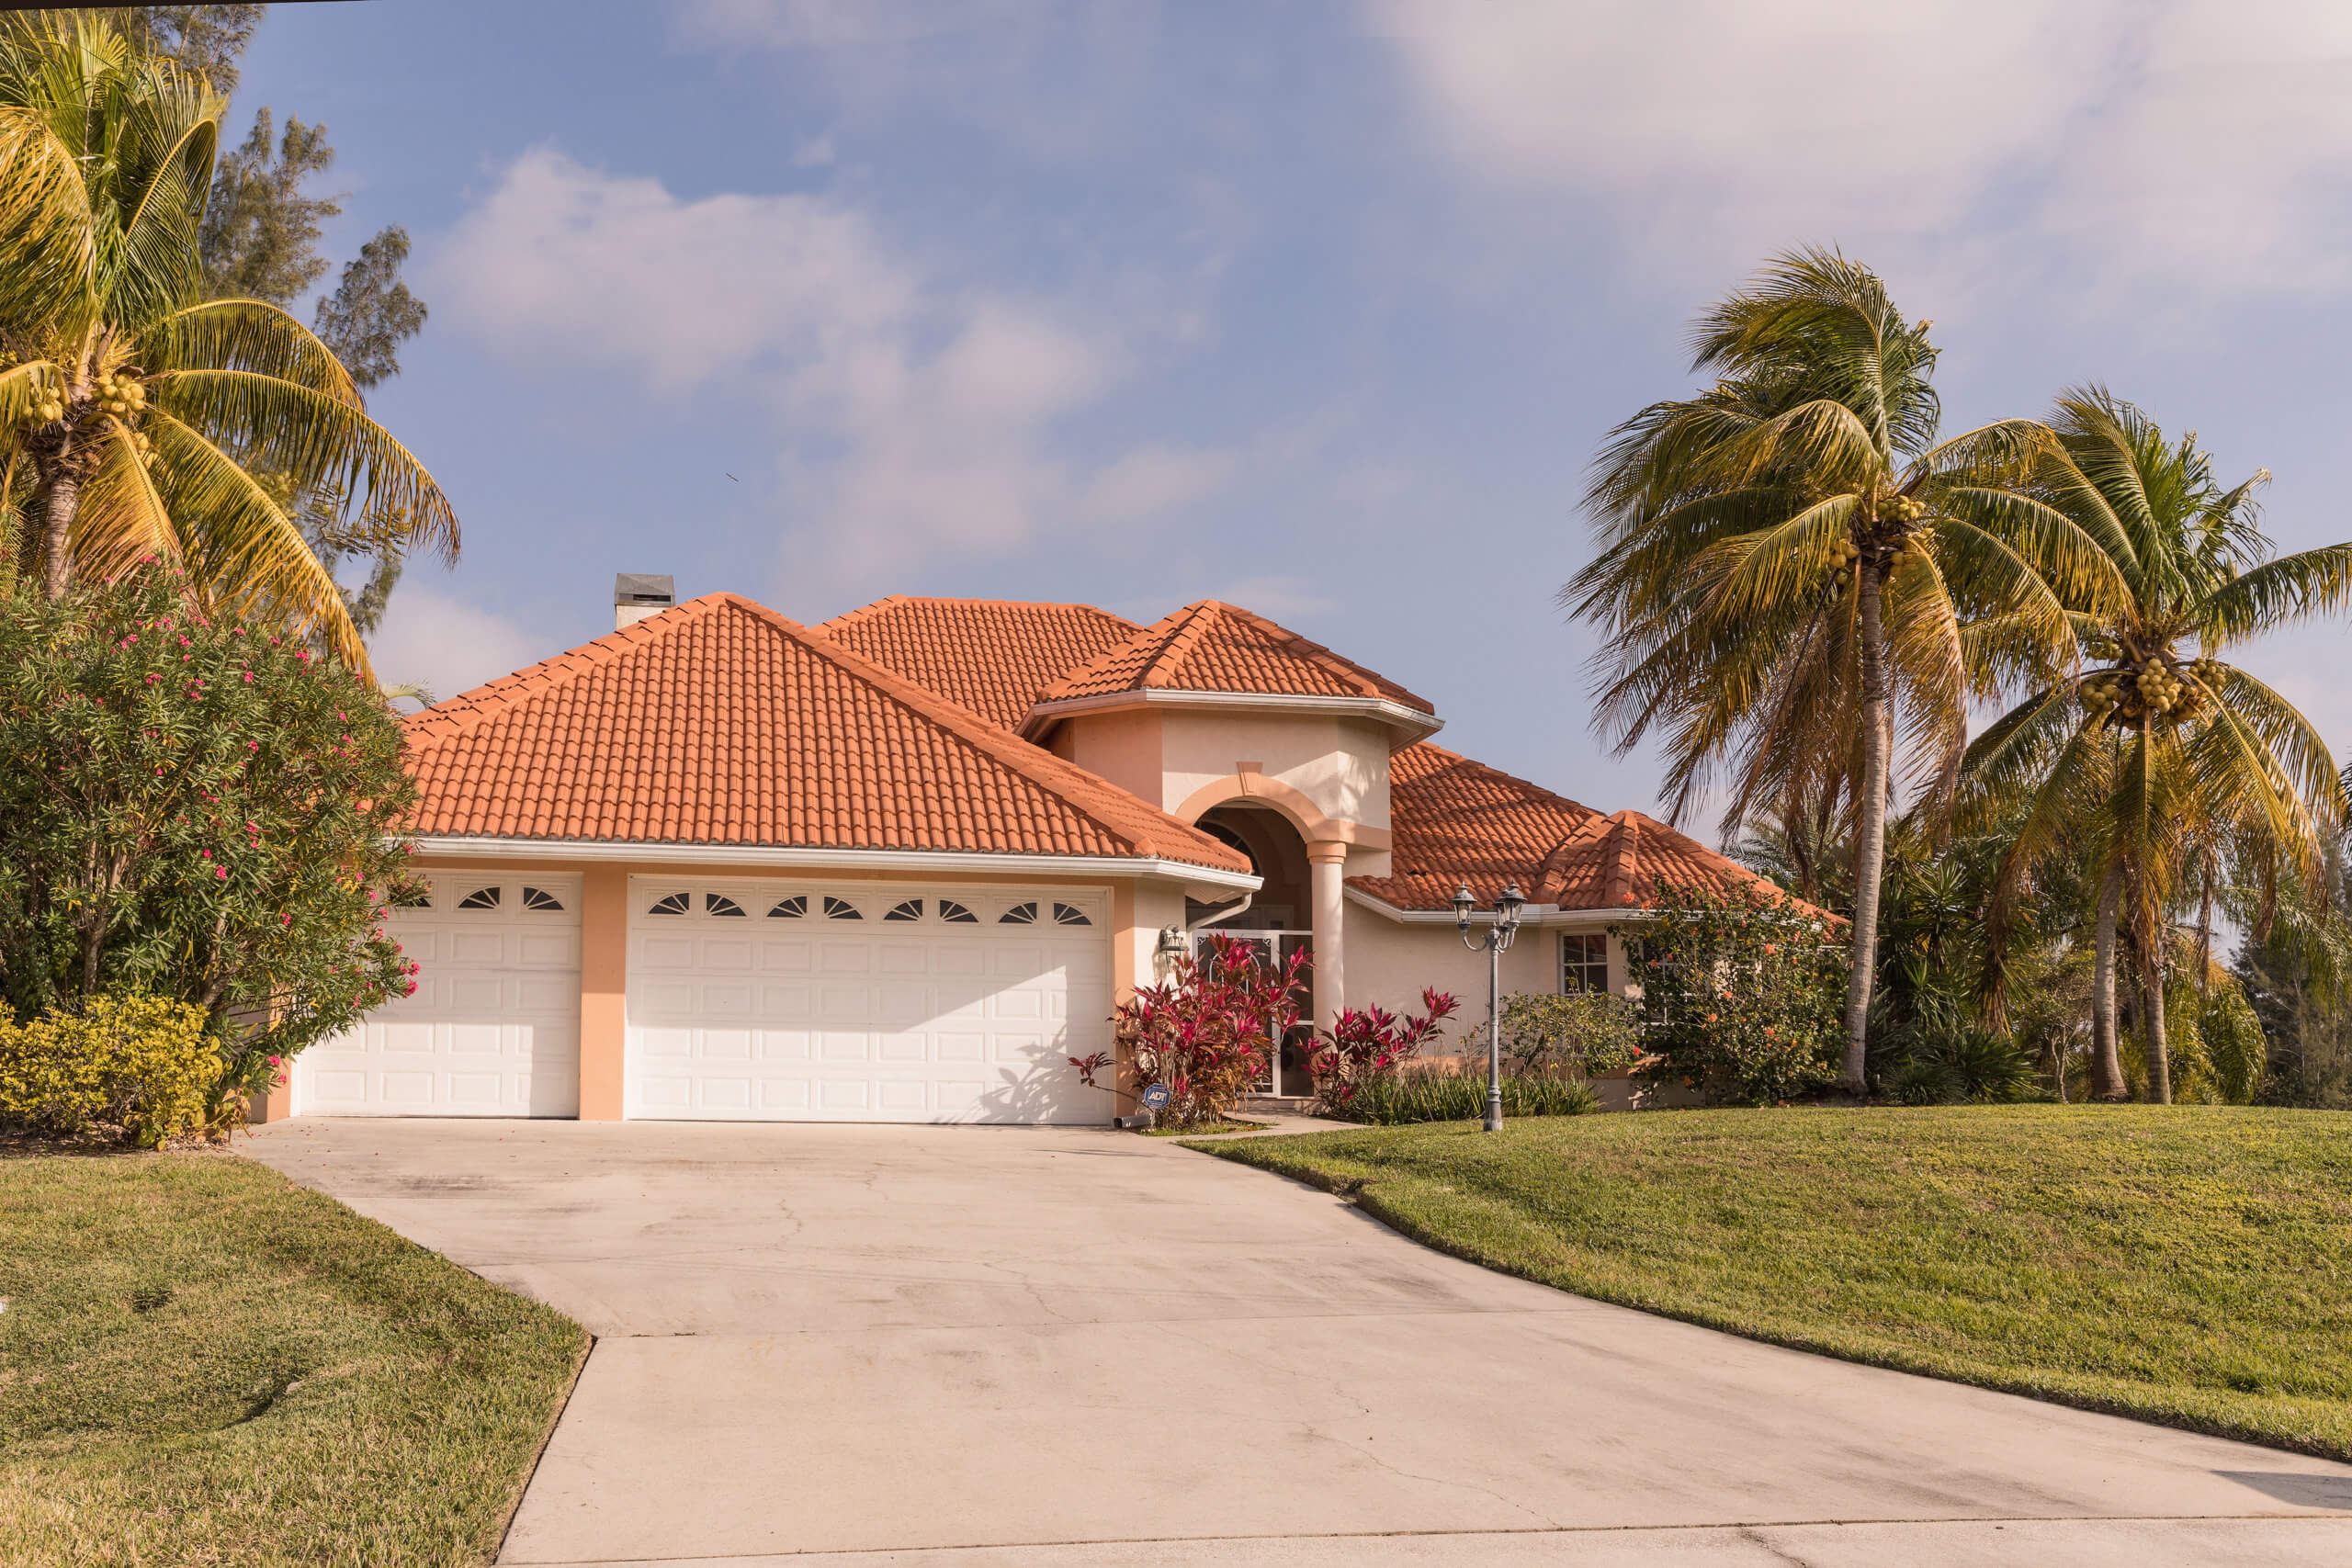 waterproofing your property Typical Southwest Florida concrete block and stucco home in the countryside with palm trees, tropical plants and flowers, grass lawn and pine trees. Florida. South Florida single family house